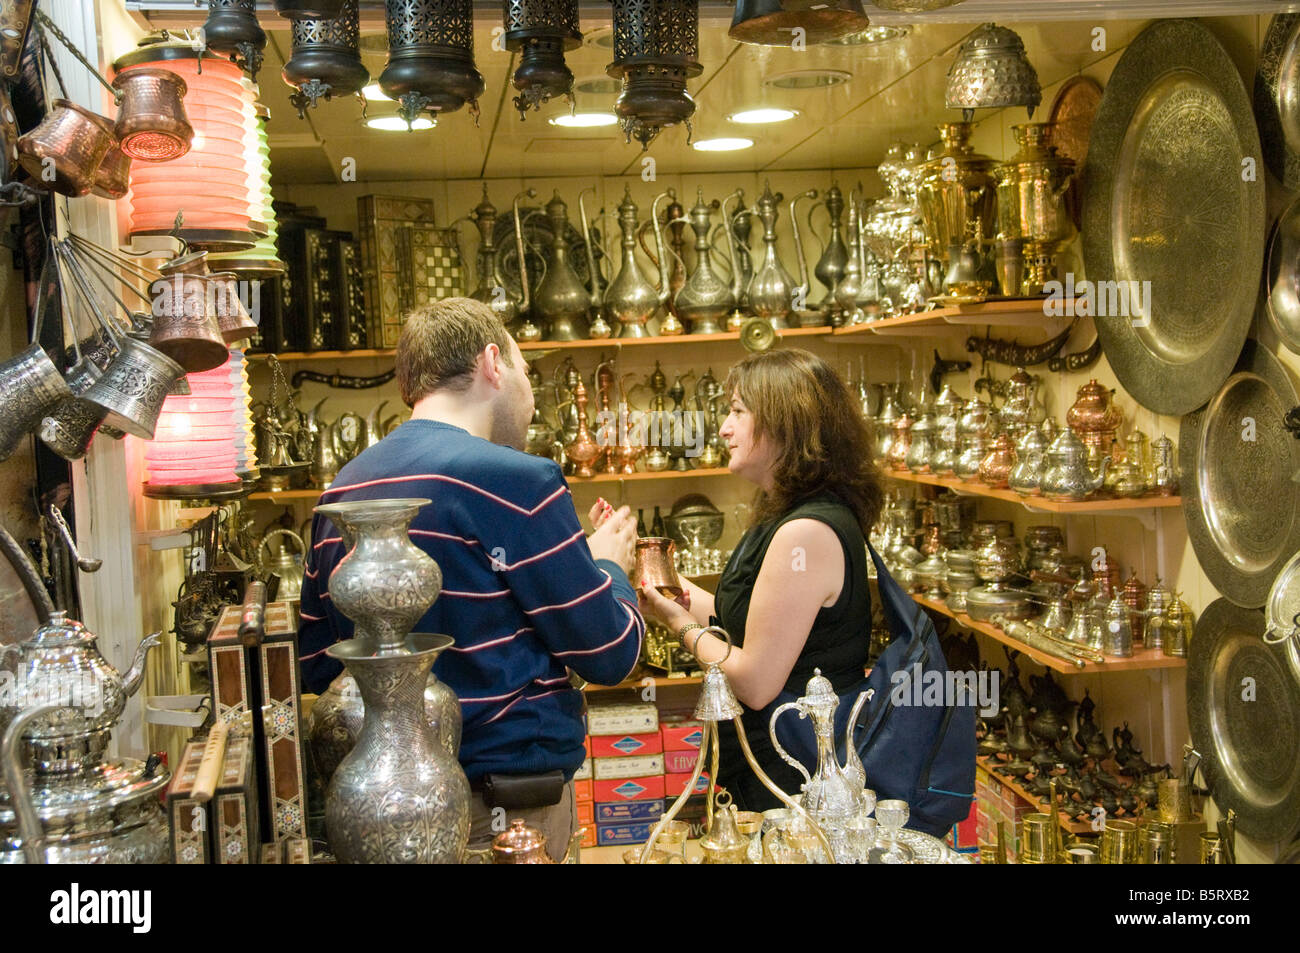 Turkey Istanbul The Grand Bazaar Copper handwork stall female tourist haggling with the vendor - Stock Image